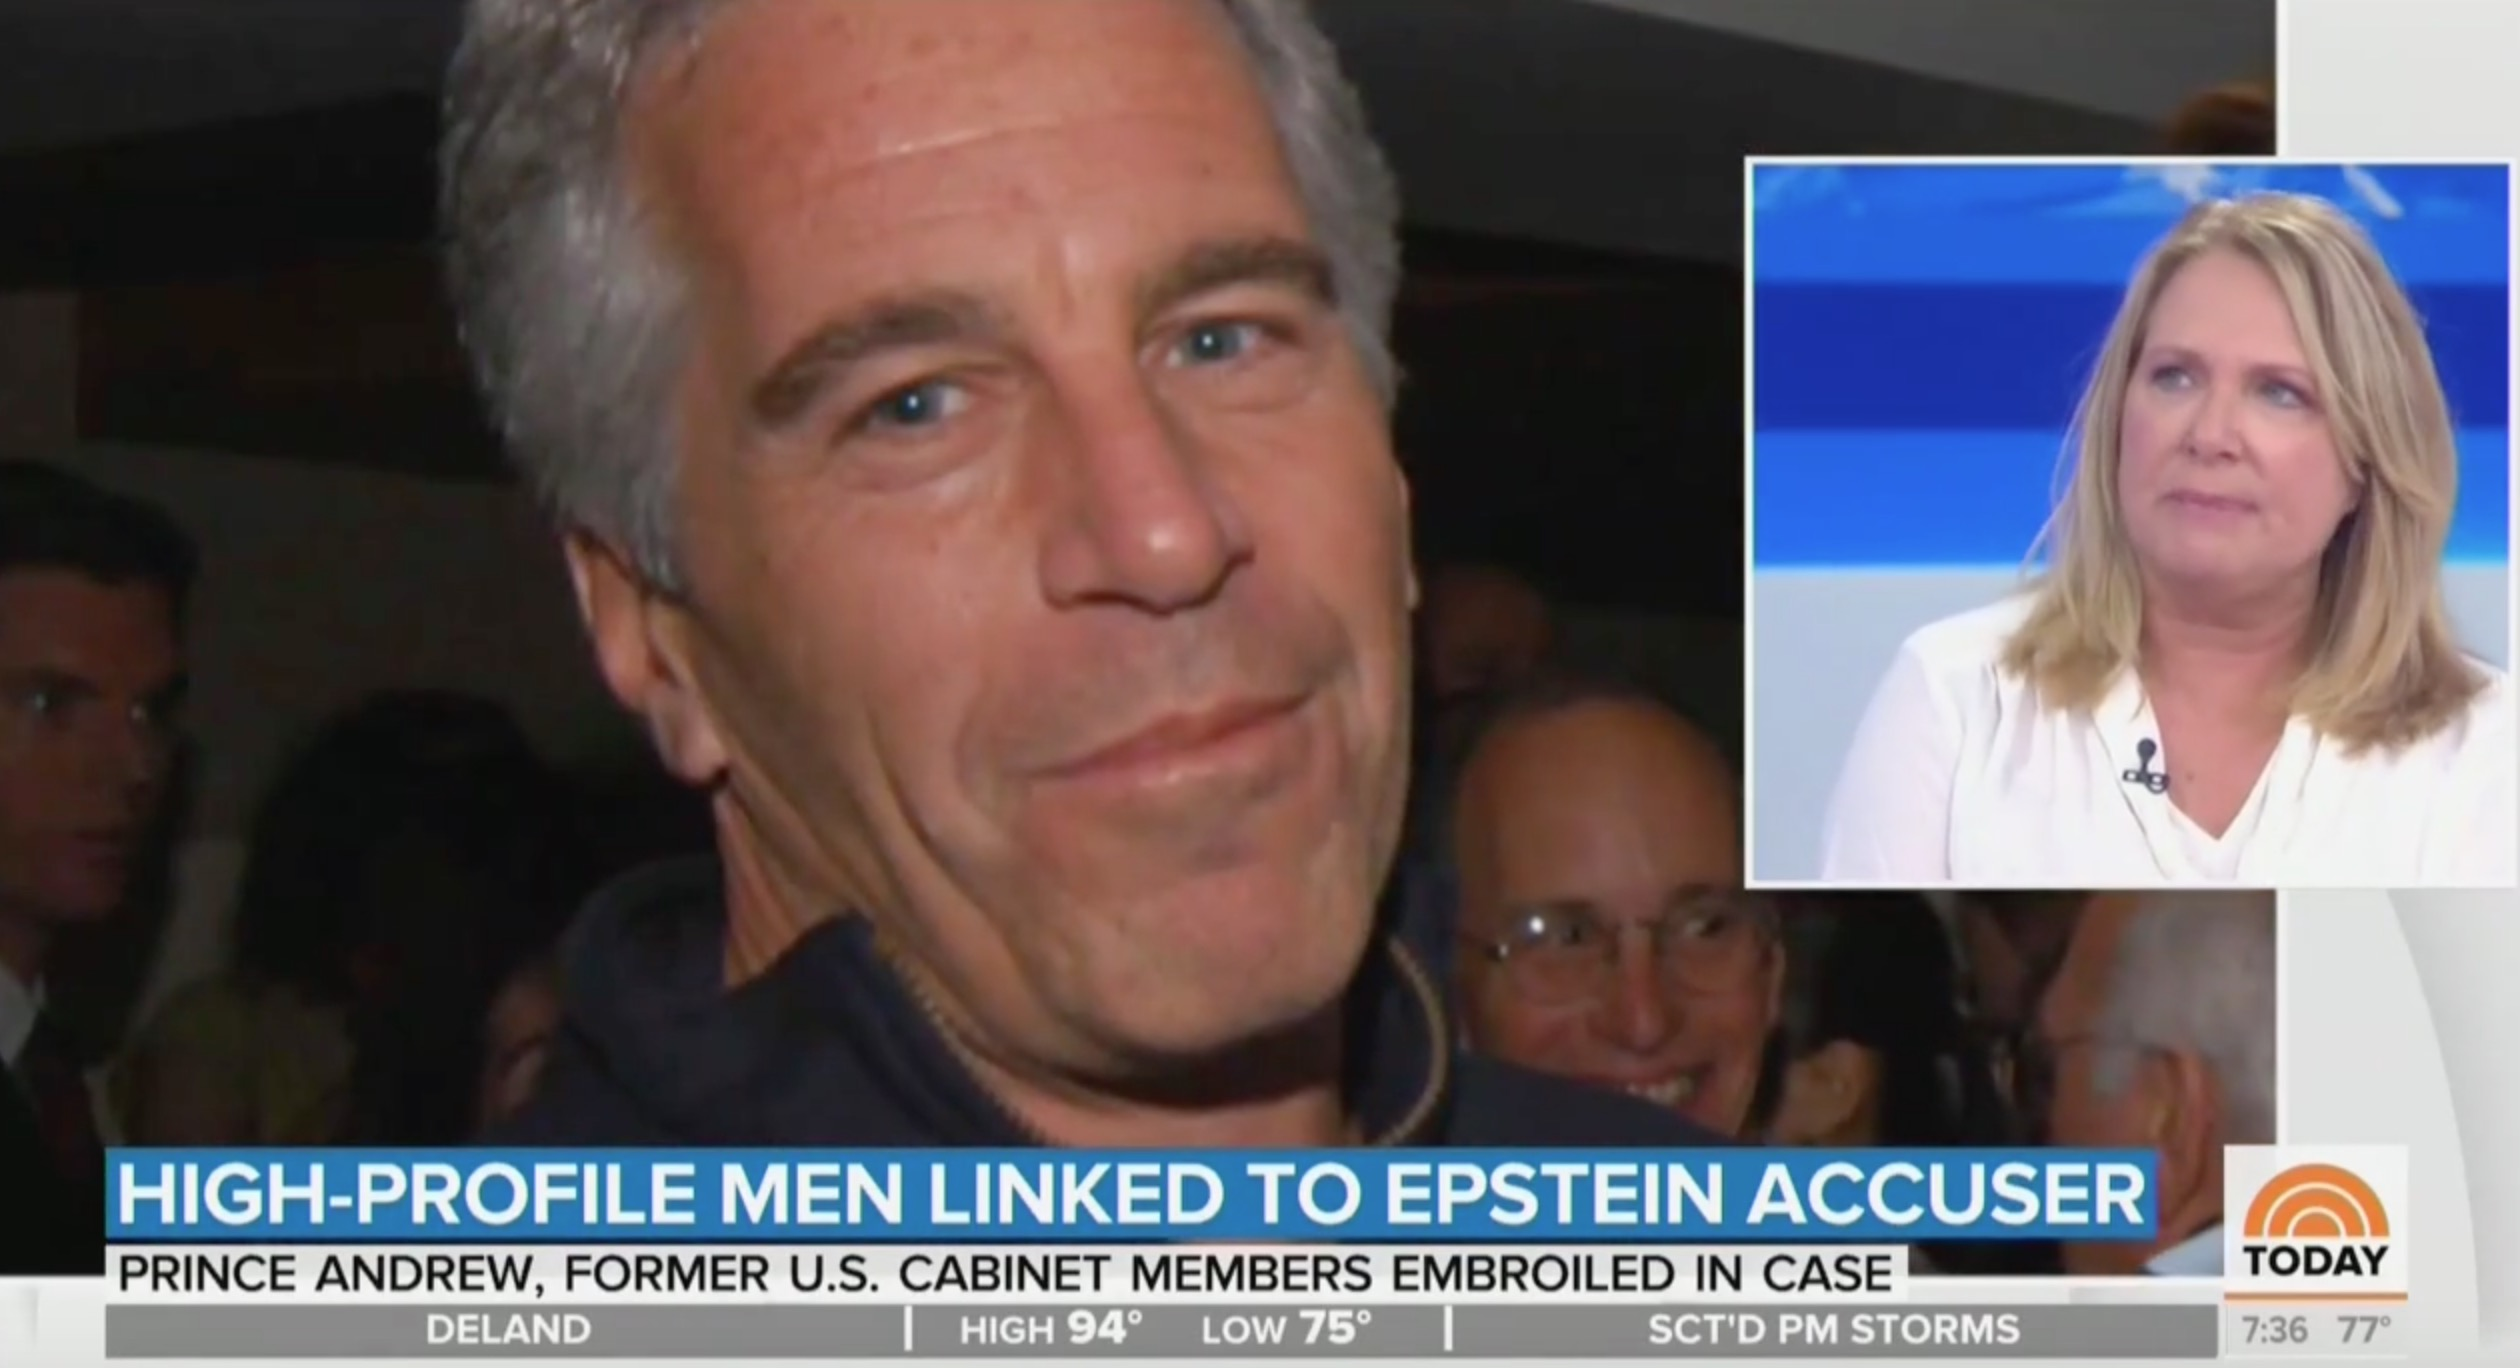 Miami Herald's Julie Brown Breaks Down Epstein's Sexual Recruitment Network: 'A Lot of People' Made Money Off of This